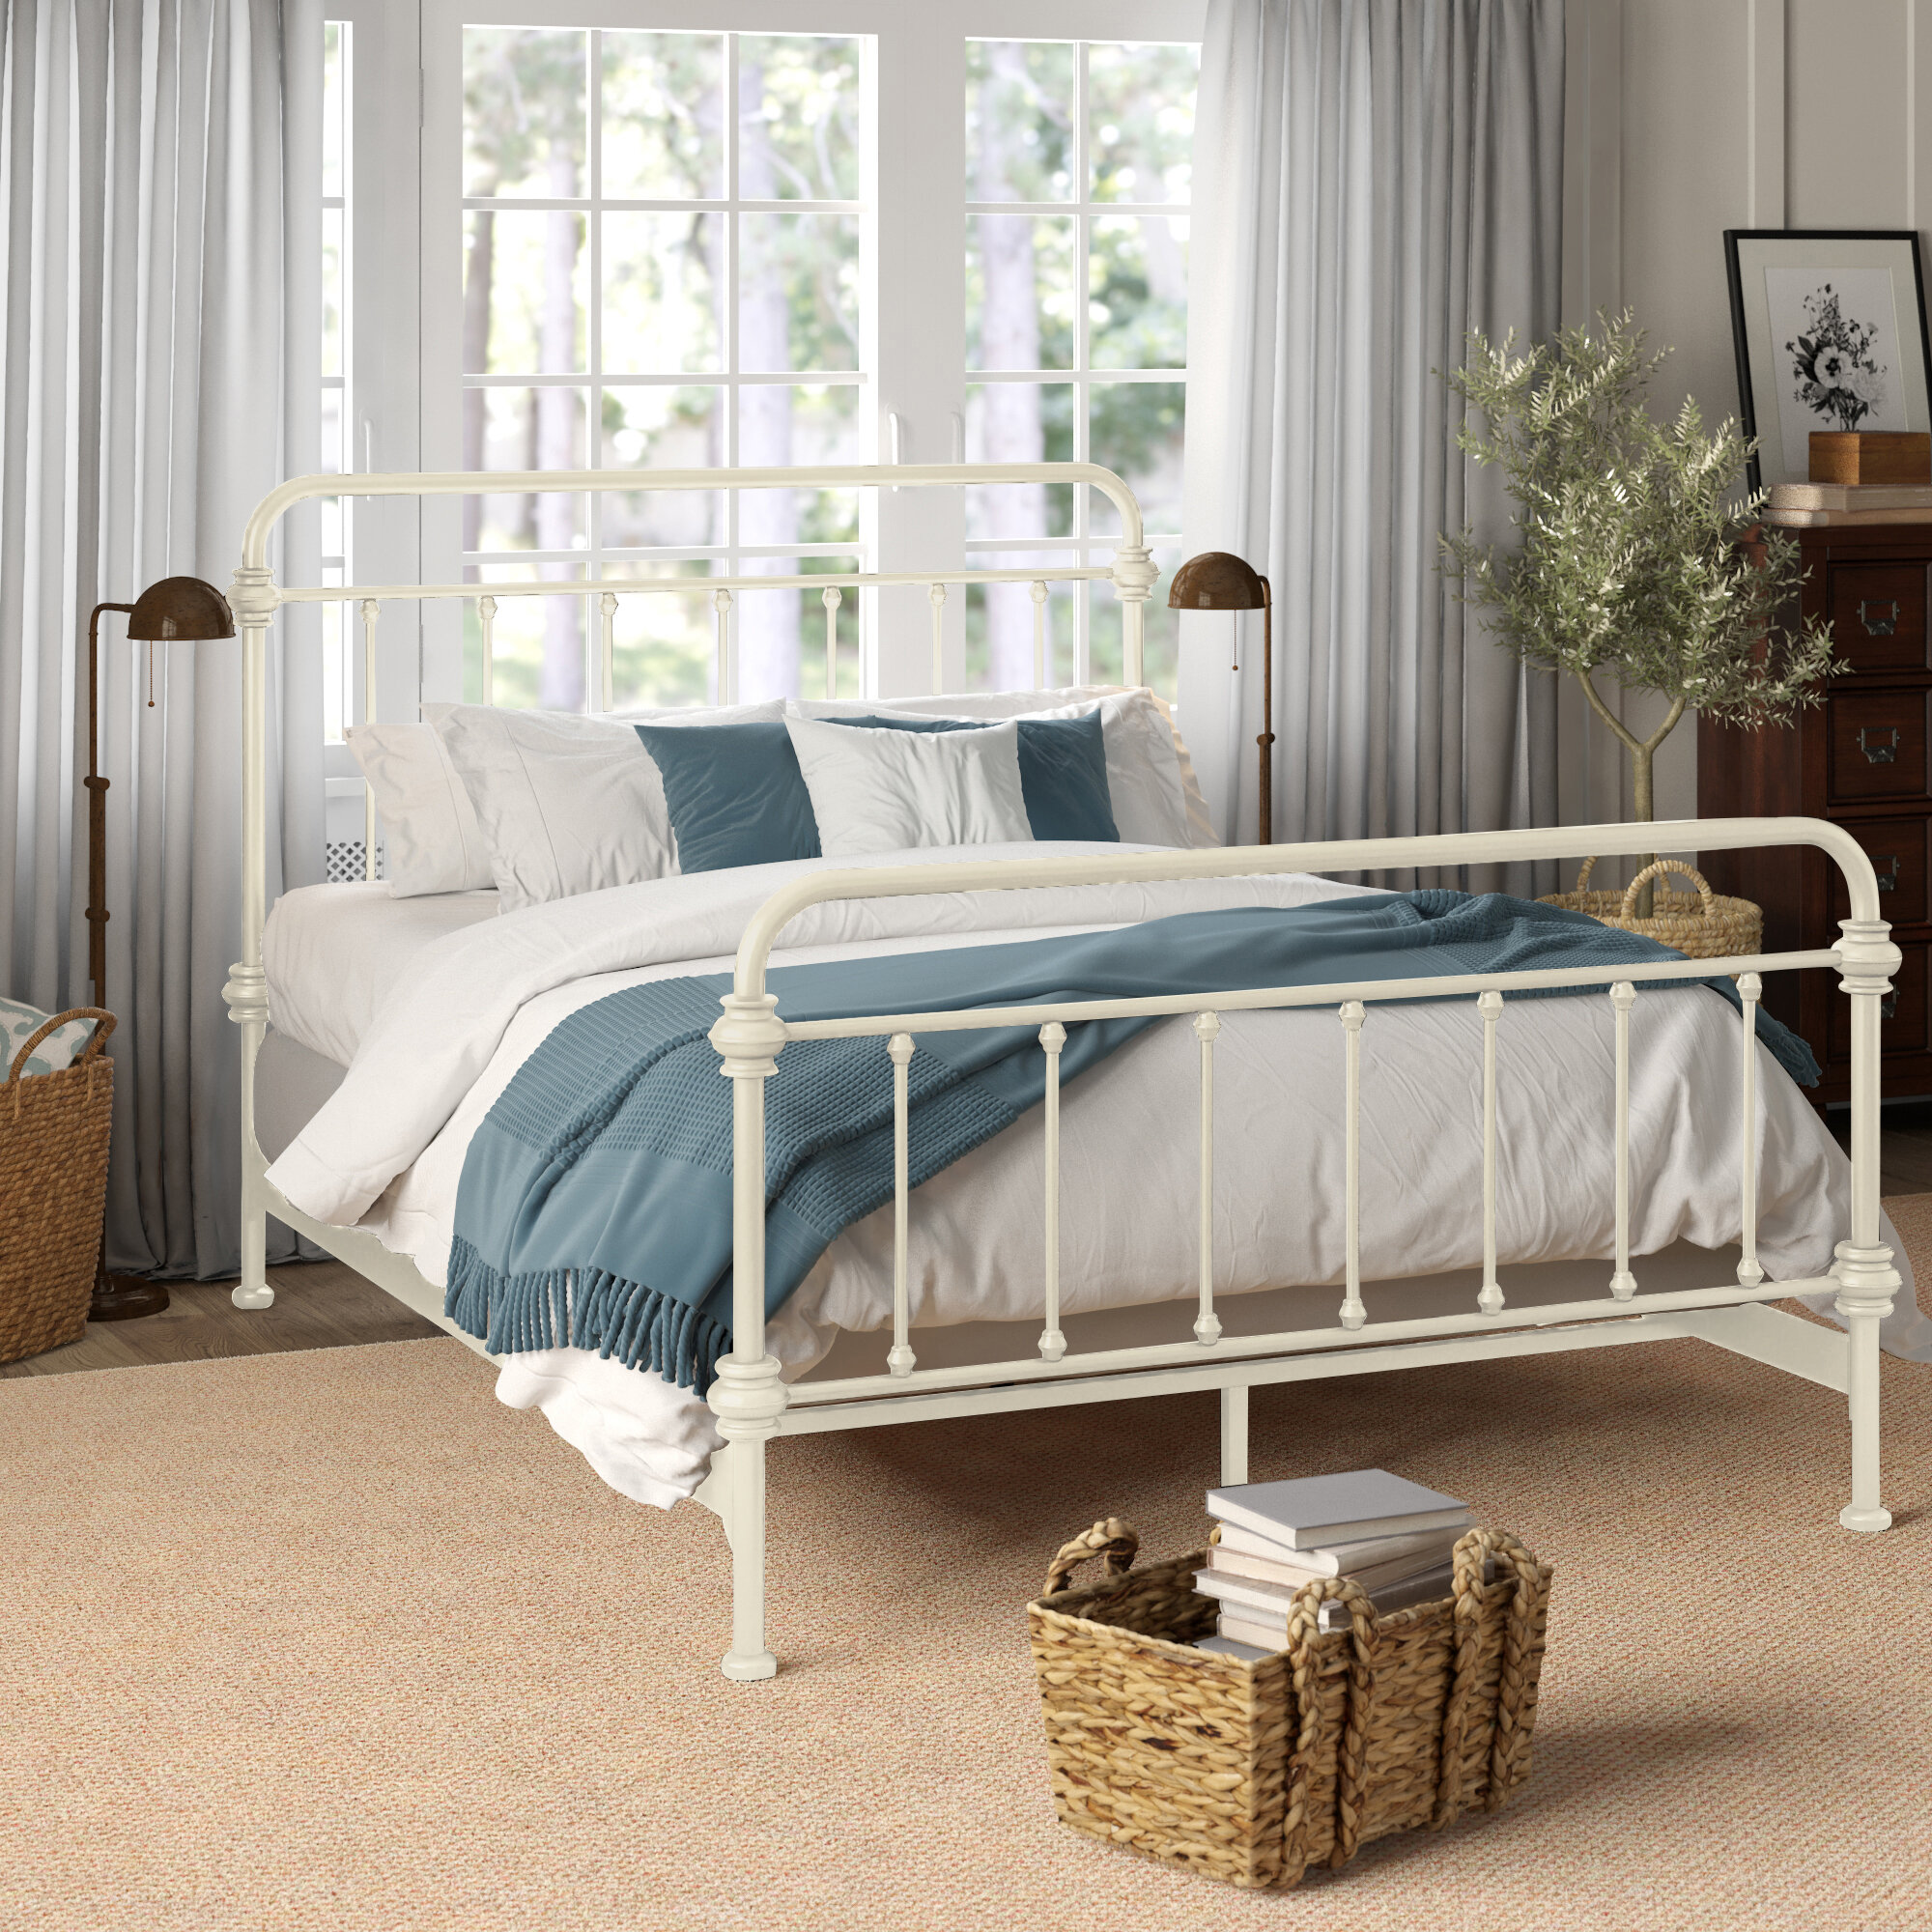 Picture of: French Country King Size Beds You Ll Love In 2020 Wayfair